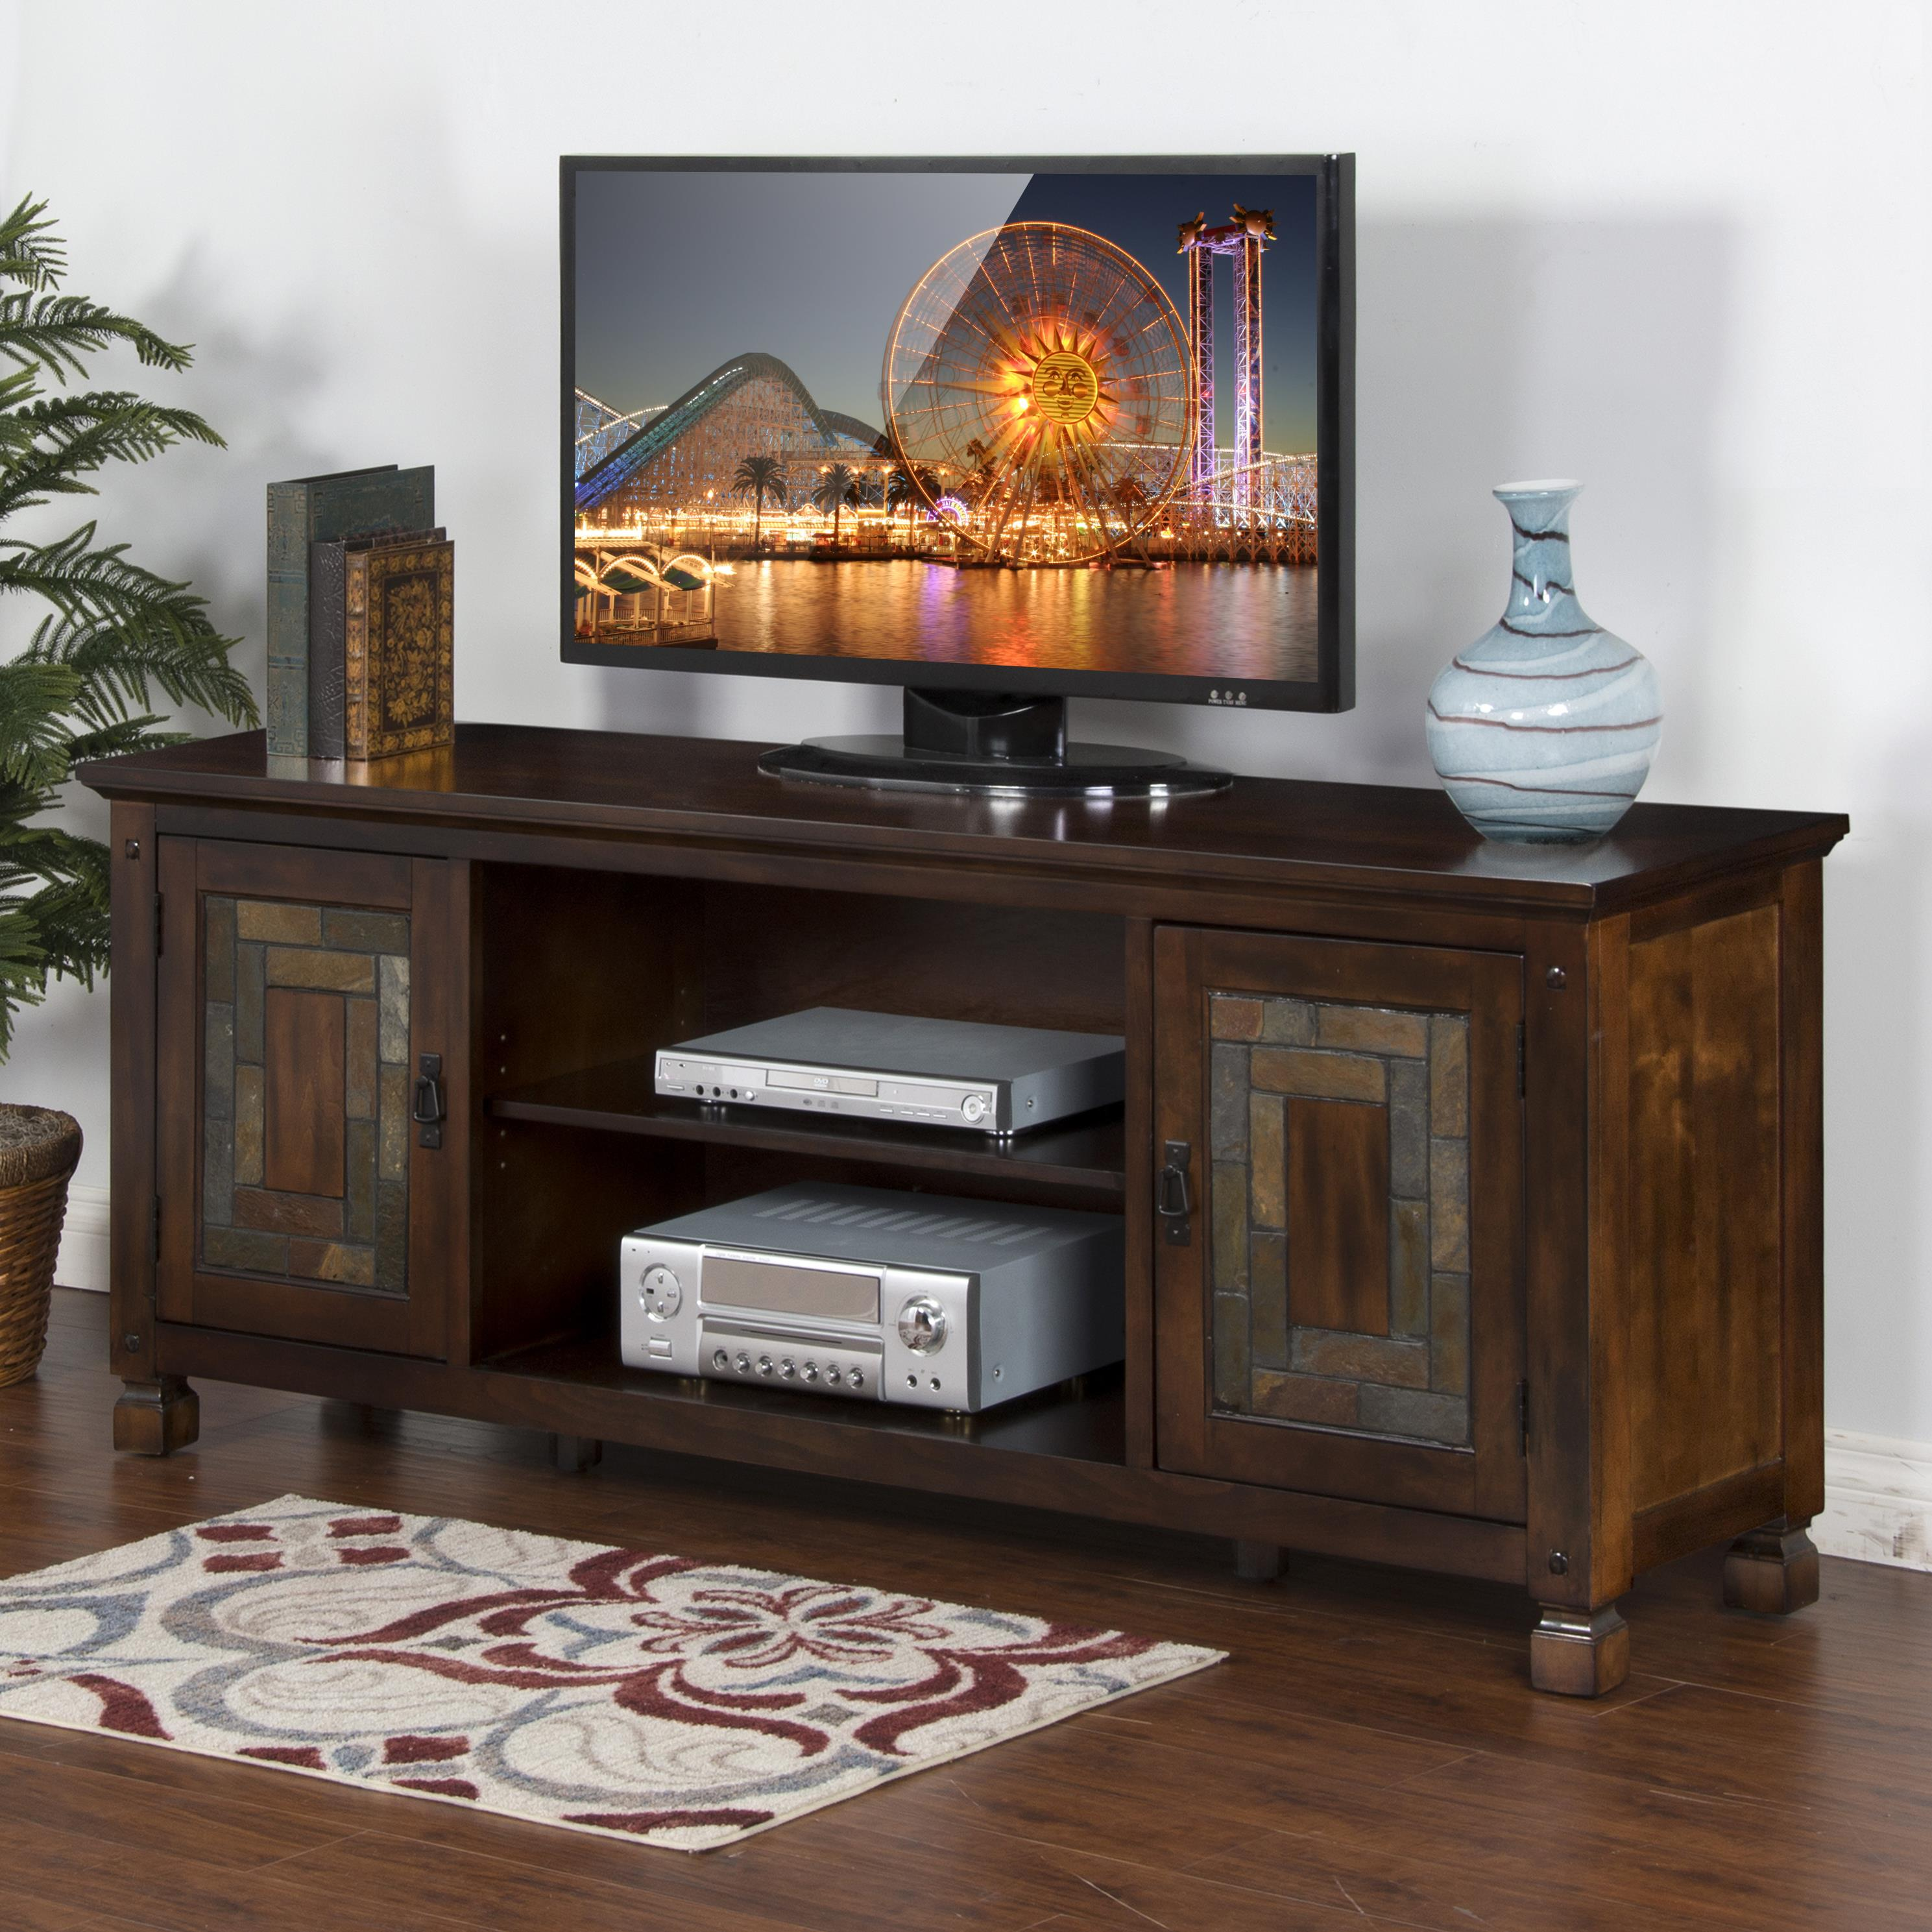 "Sunny Designs Dark Hazelnut 74"" TV Console w/ Slate - Item Number: 3537DH-74"